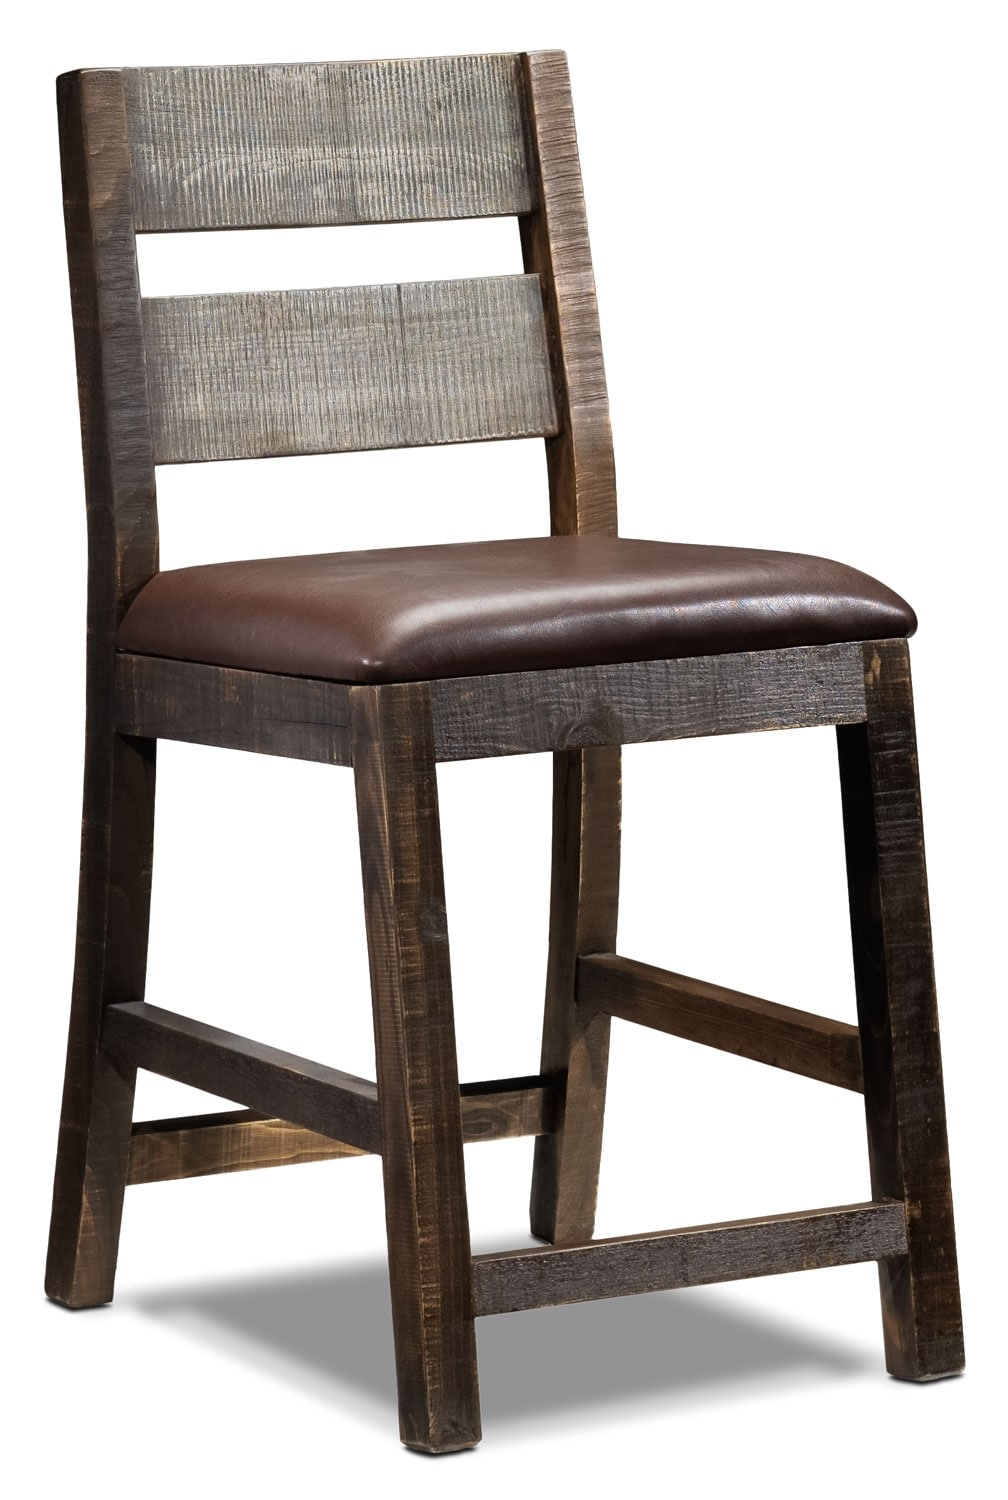 Allison Pine Pub Chair - Antiqued Pine